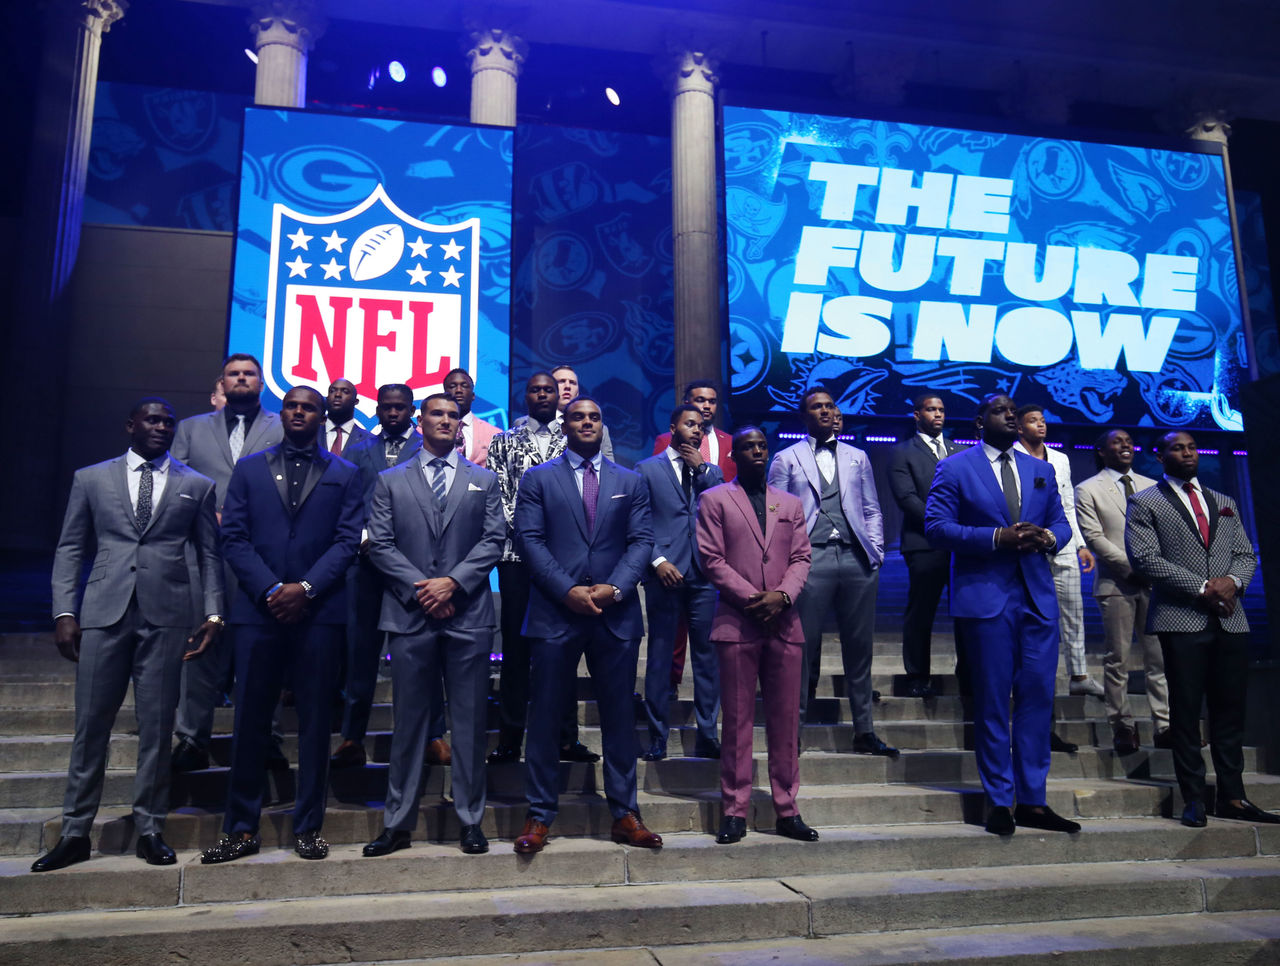 Cropped 2017 04 27t234541z 1582048169 nocid rtrmadp 3 nfl 2017 nfl draft